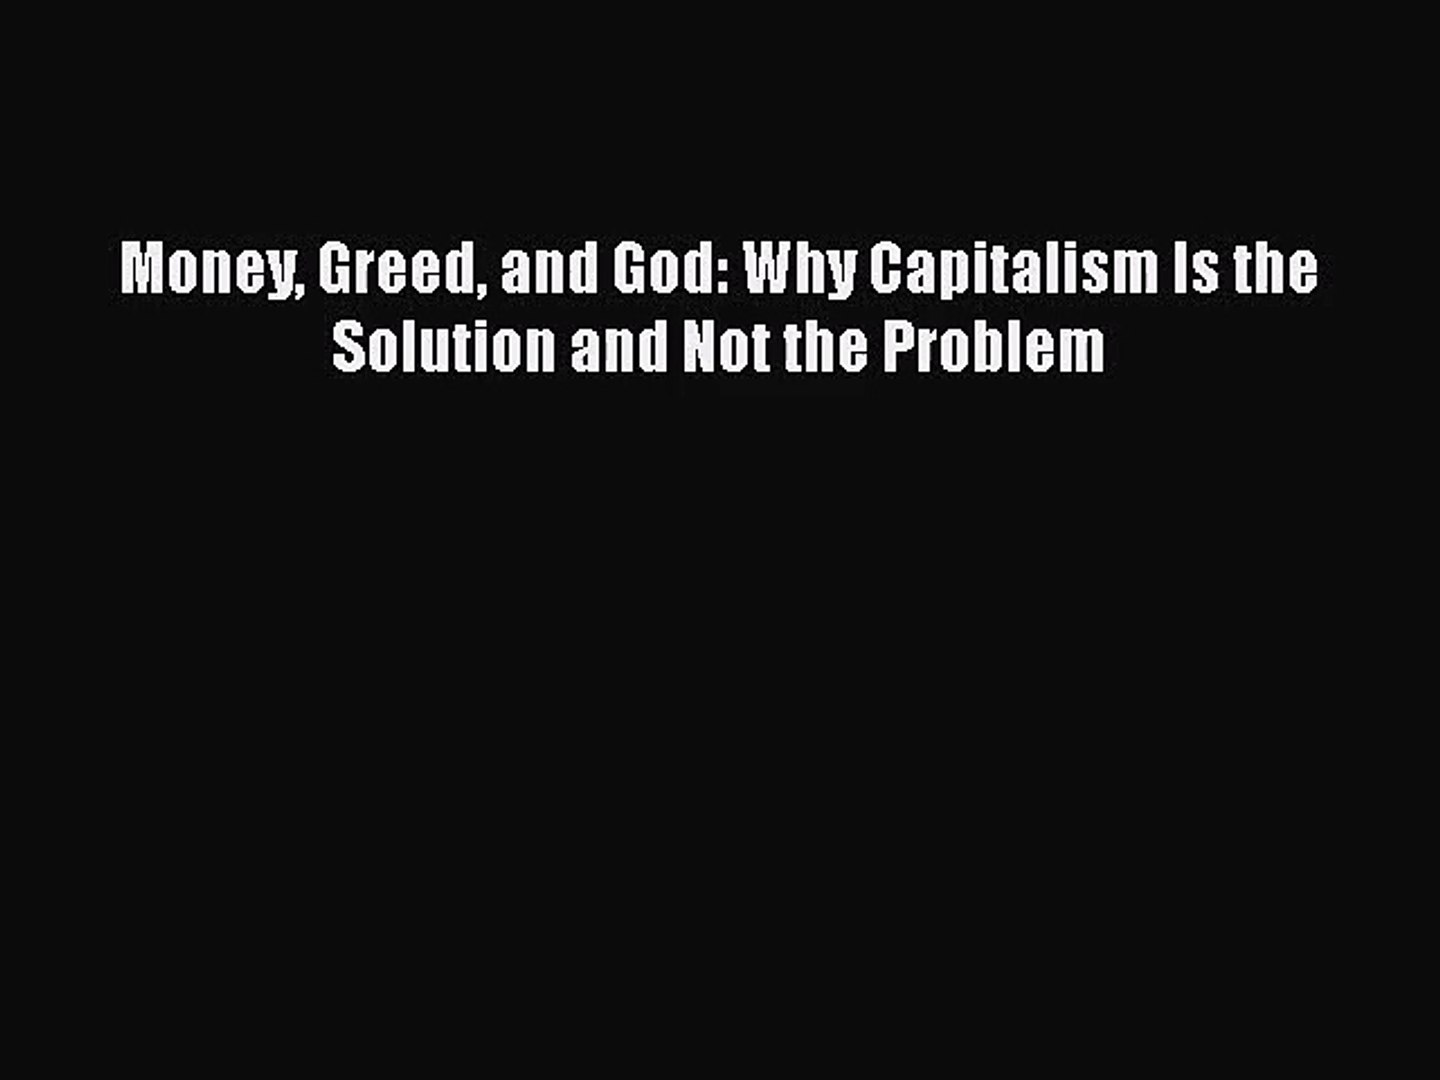 Greed Why Capitalism Is the Solution and Not the Problem and God Money